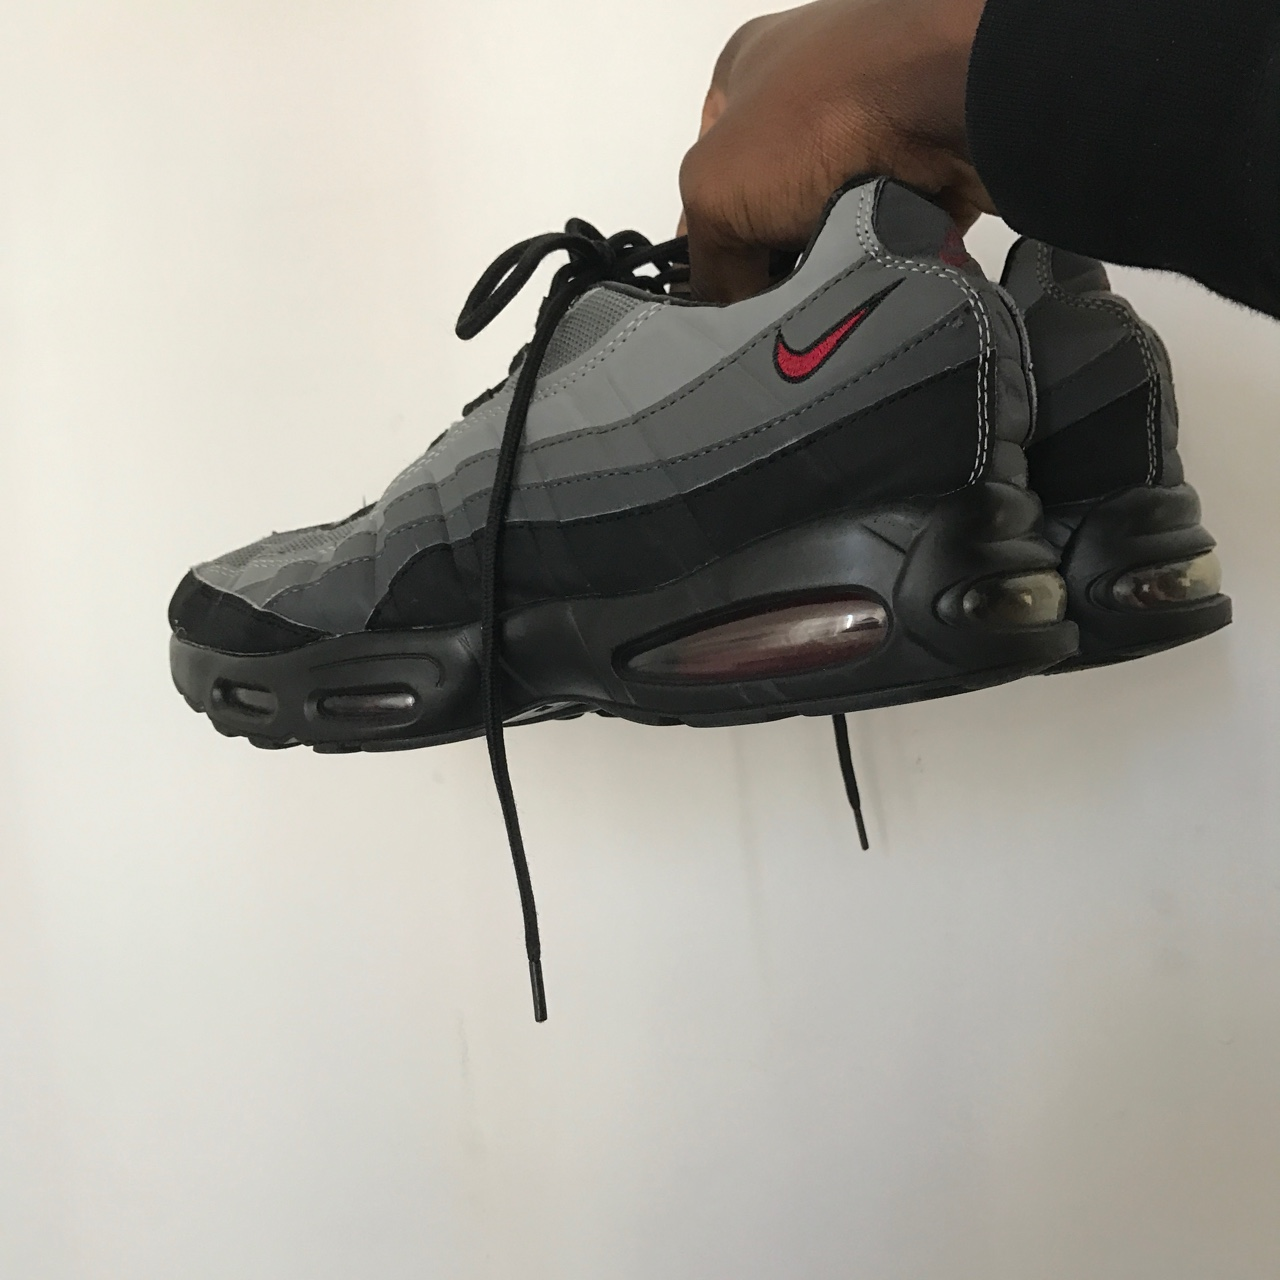 presenting 2018 shoes detailed look Black & Grey Nike Air Max 95 size 9 for sale. Apart... - Depop